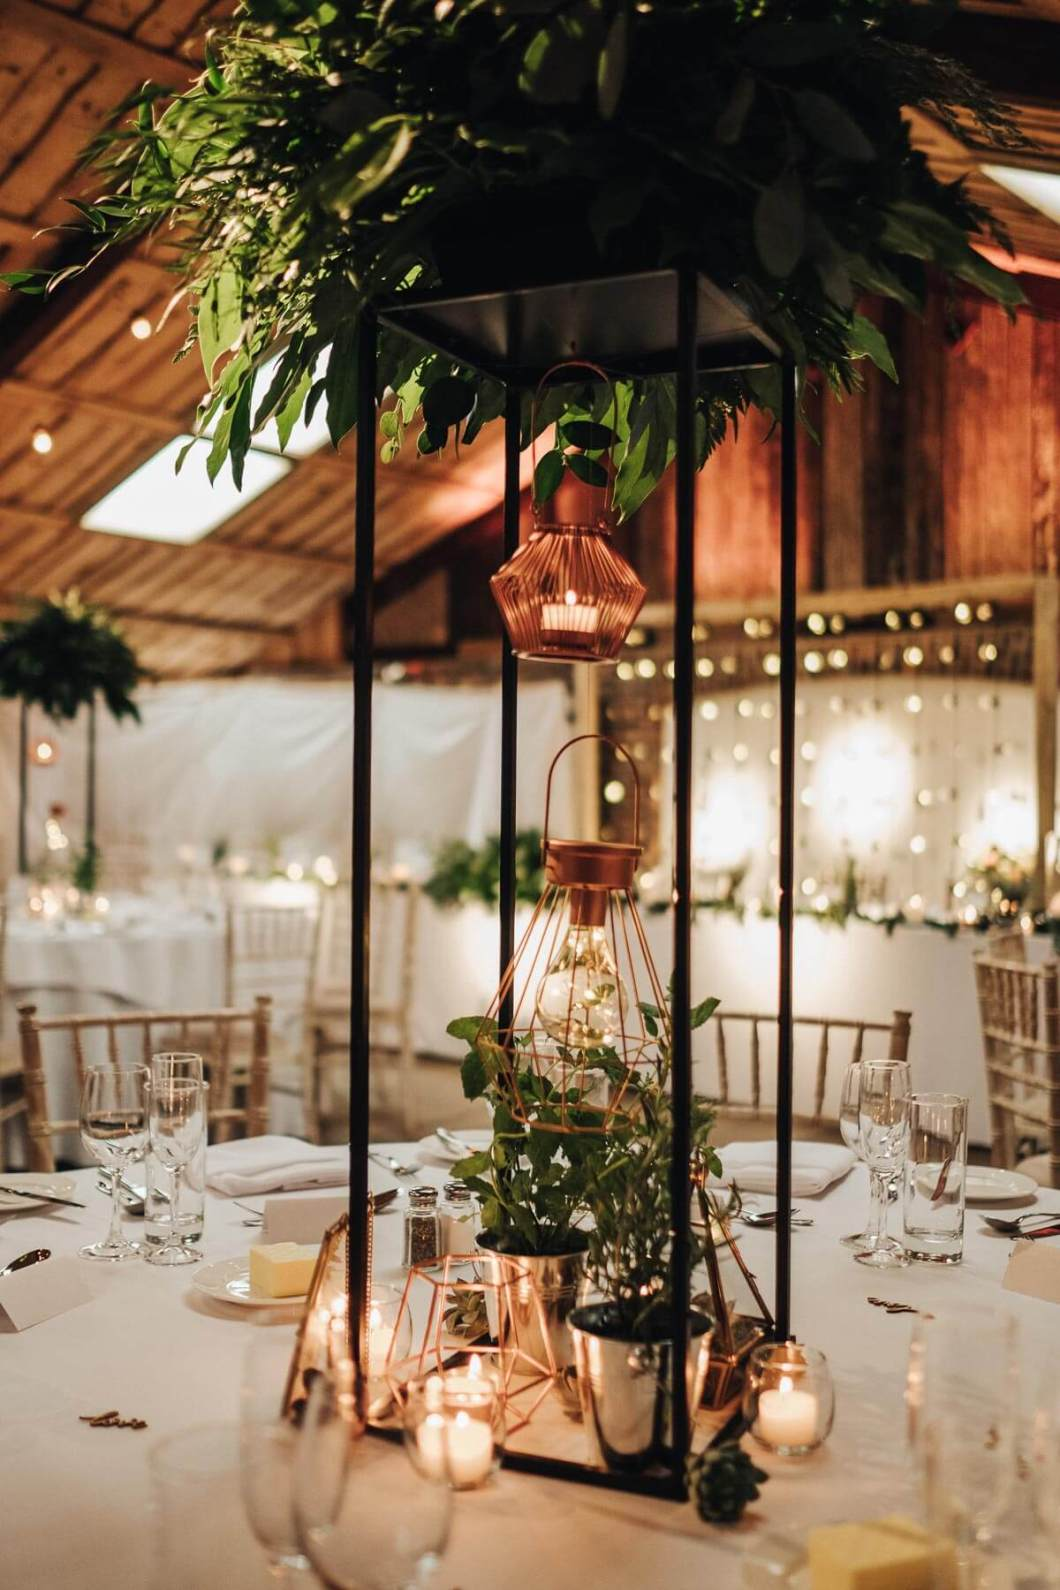 Copper themed wedding details